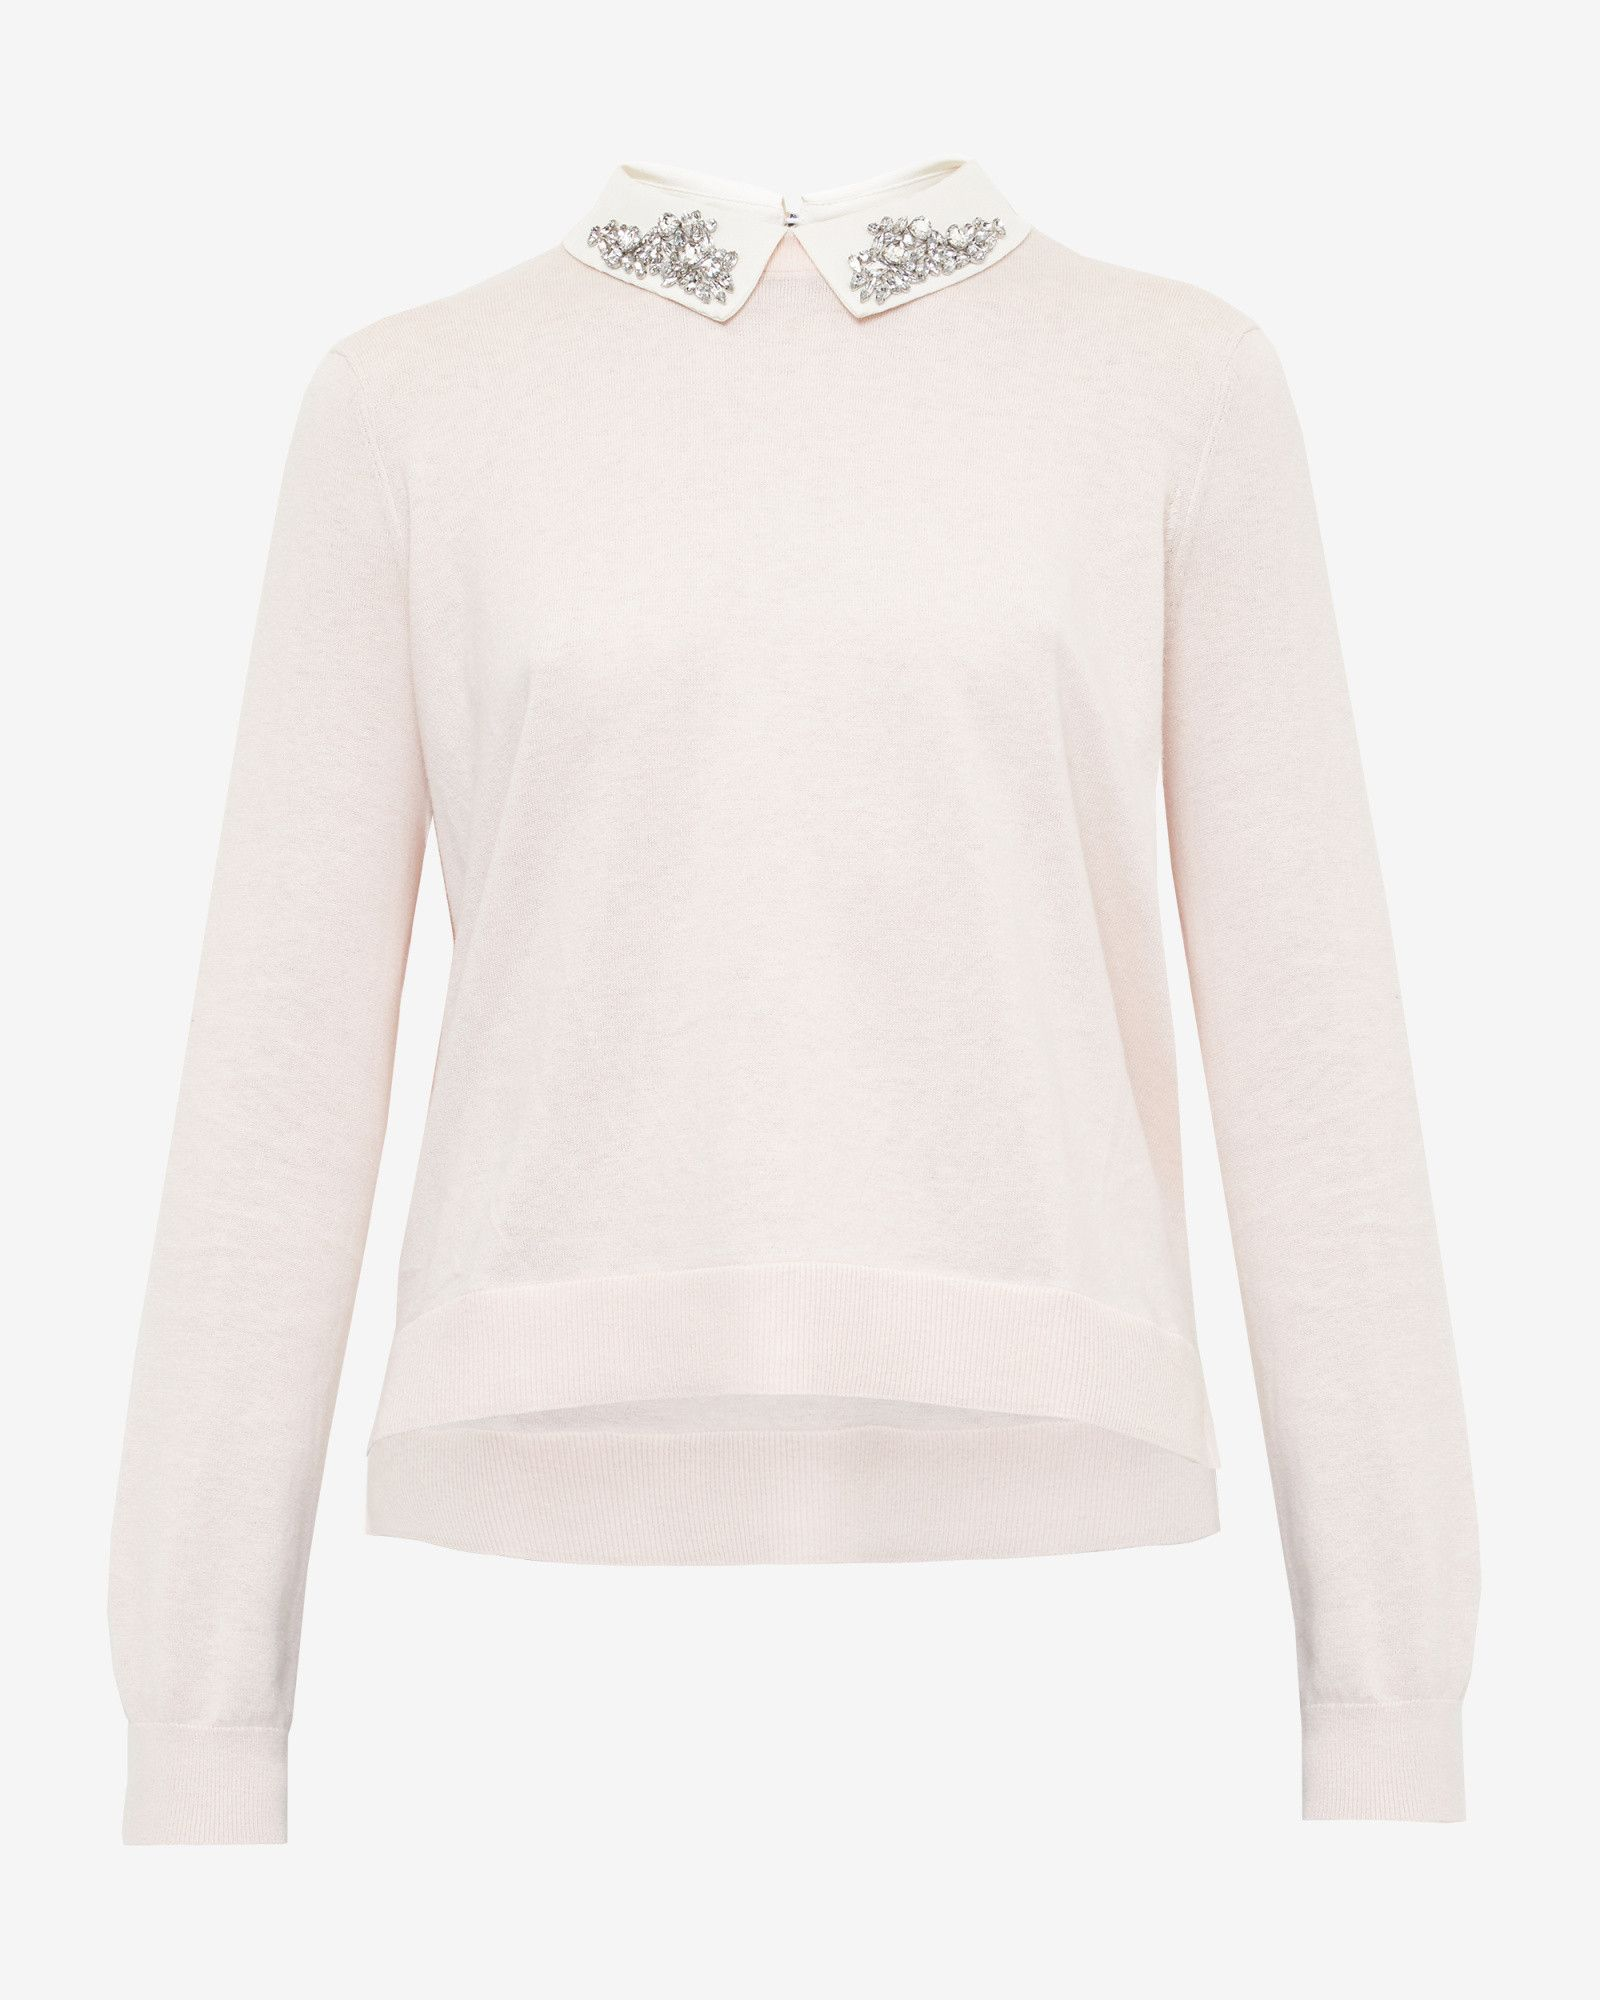 d91cda08210dcf Embellished collar silk-blend sweater - Pink   Sweaters   Ted Baker  #Riverdale #BettyCooper   ♡Shire Bri Loves♡ in 2019   Pink sweater, Jumper  shirt, ...